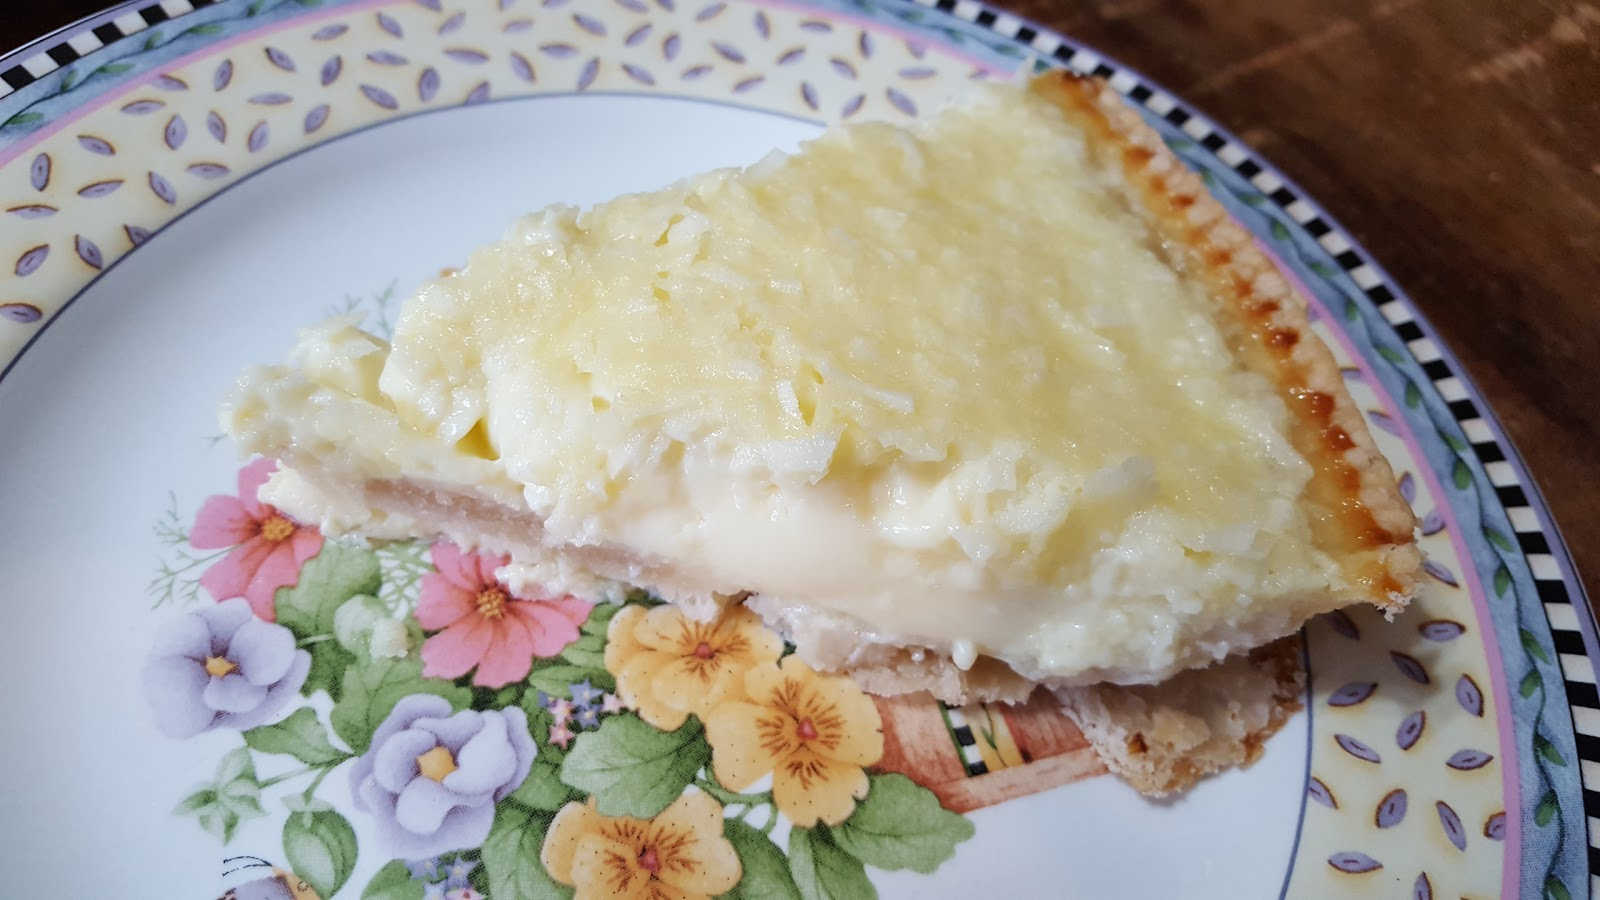 My Patchwork Quilt: COCONUT CUSTARD PIE